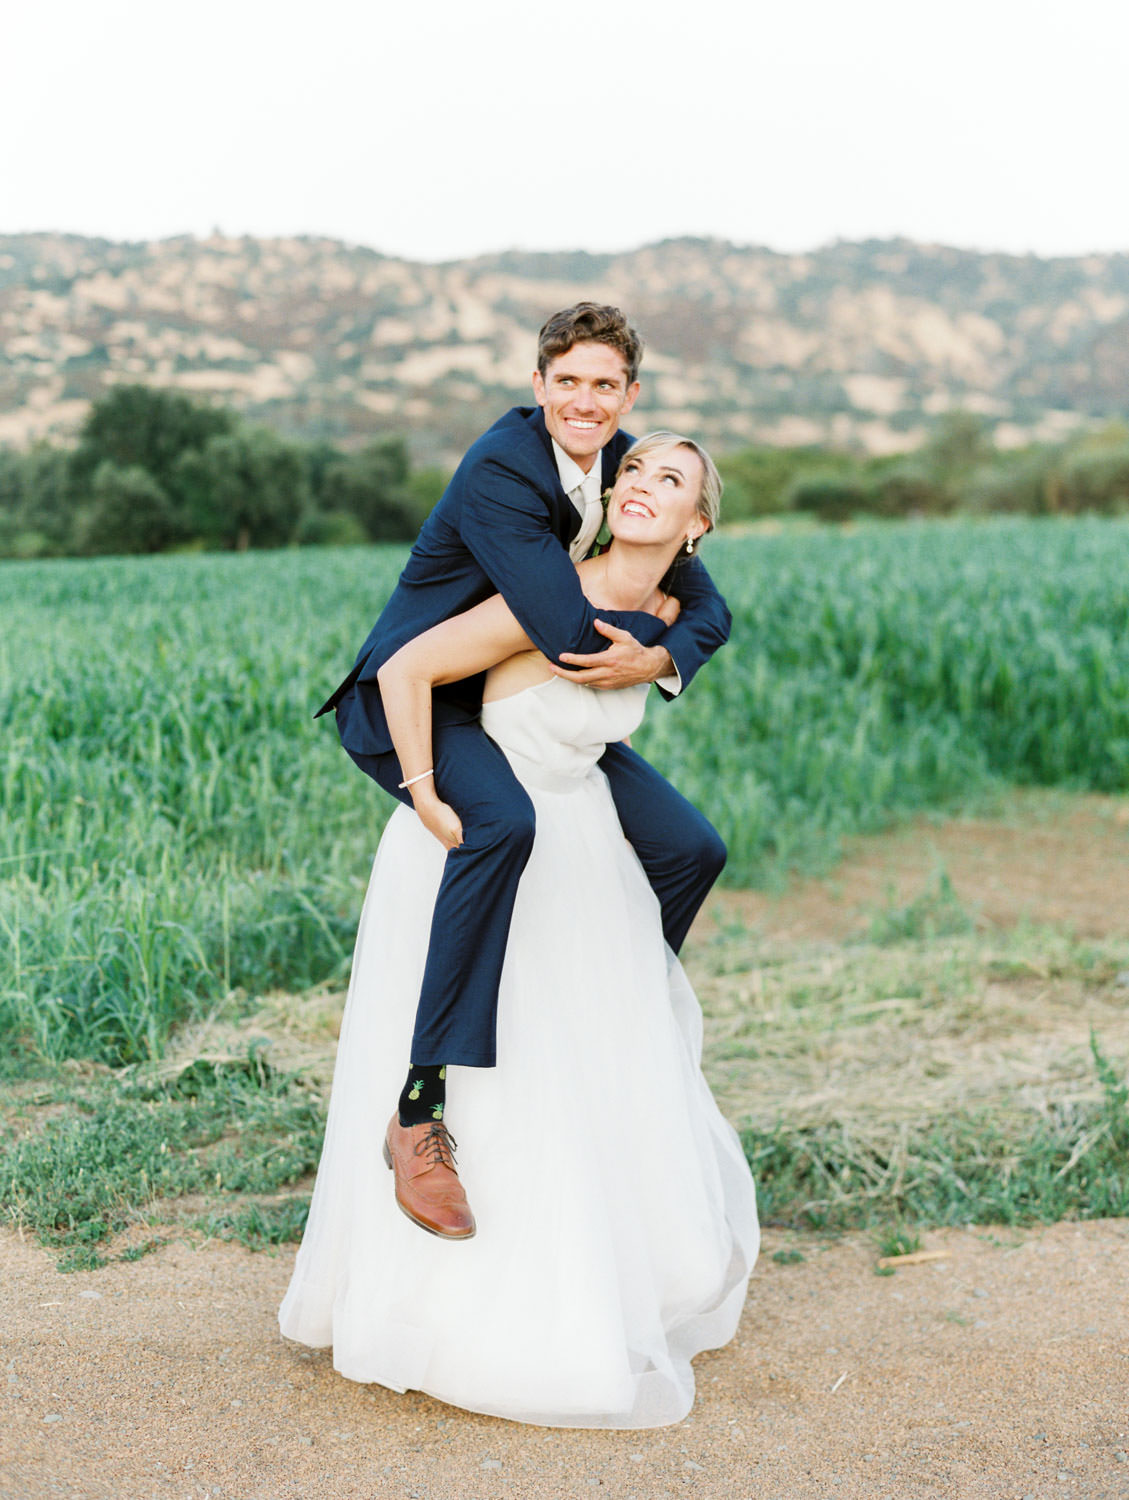 Bride giving groom a piggy back ride on a farm road with fields and mountains in the background. Full Belly Farm reception by film photographer Cavin Elizabeth Photography